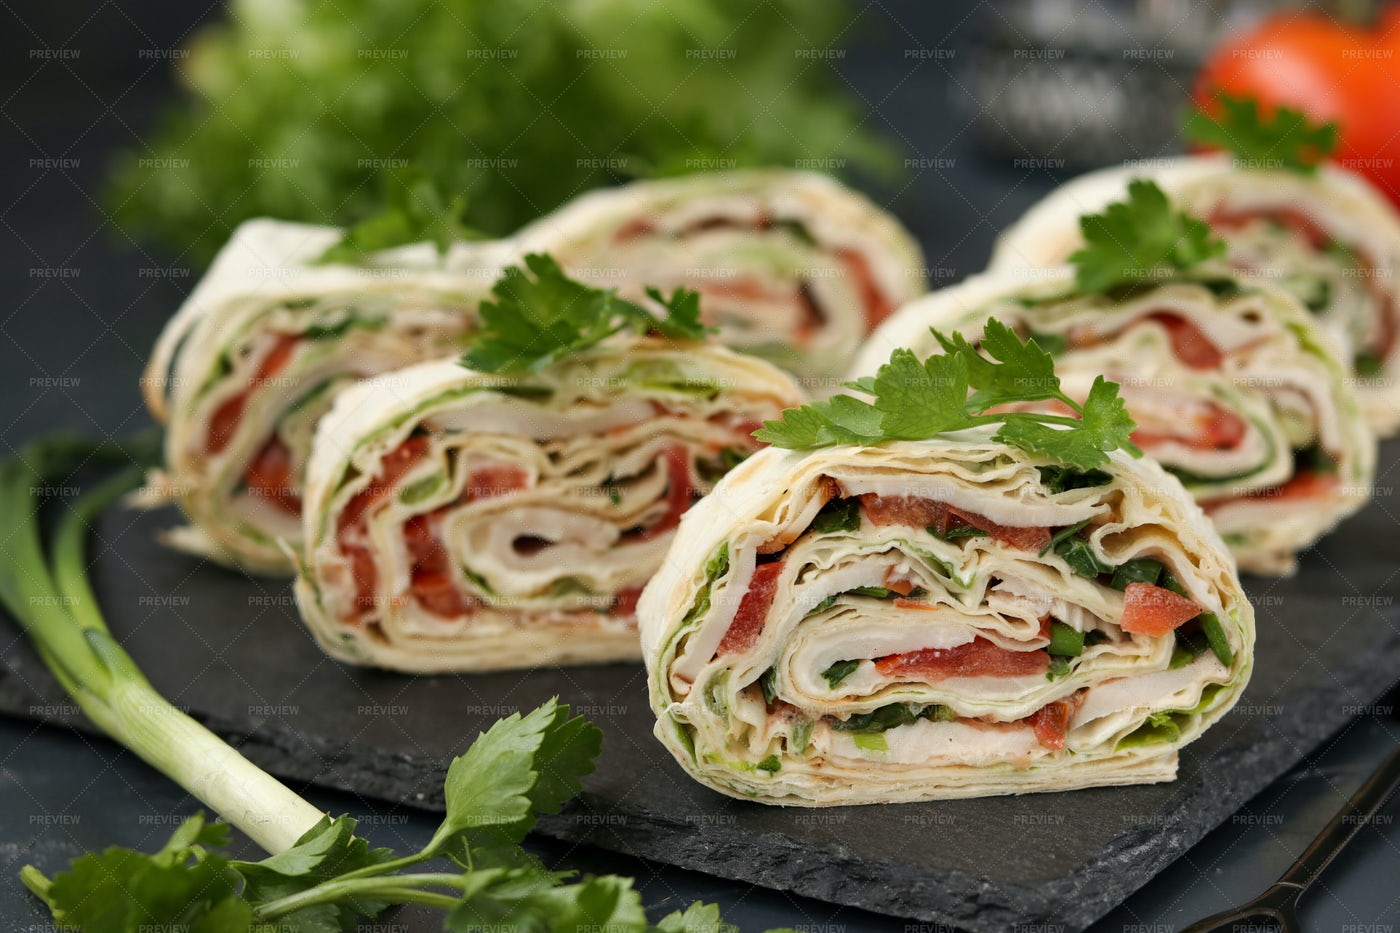 Lavash Roll With Smoked Chicken: Stock Photos